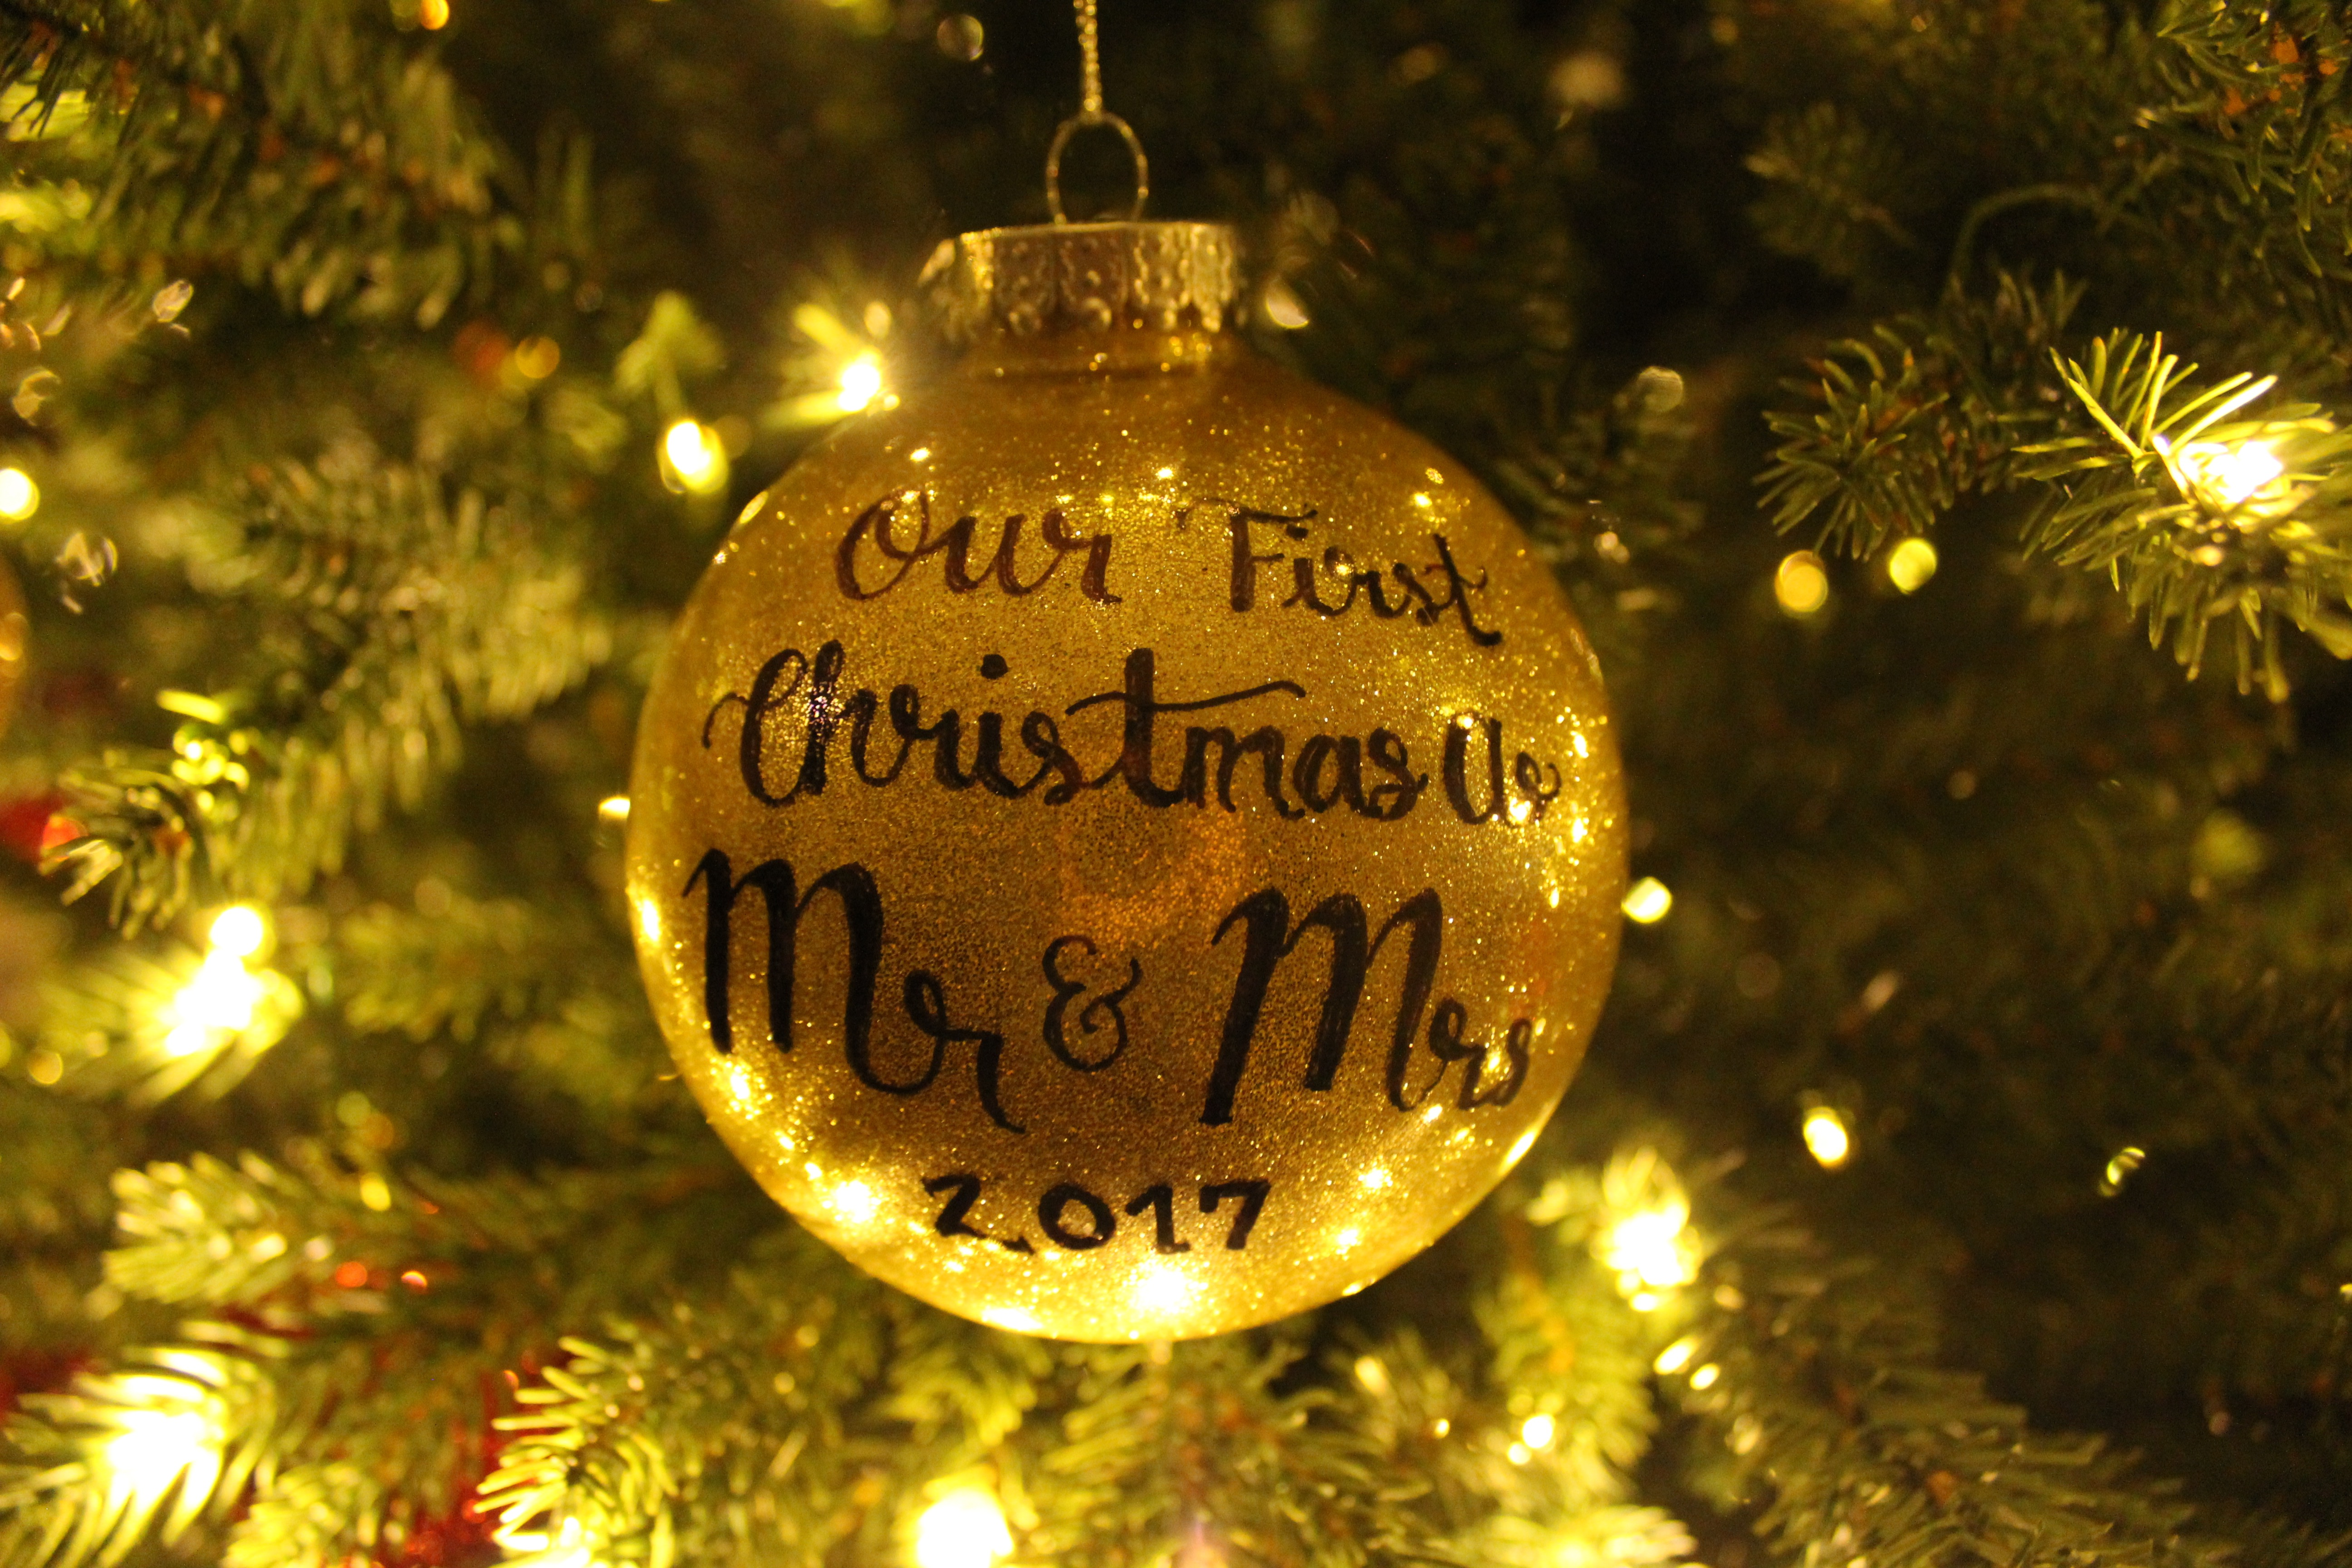 Personalized Christmas Balls.The 12 Diys Of Christmas Personalized Christmas Balls The